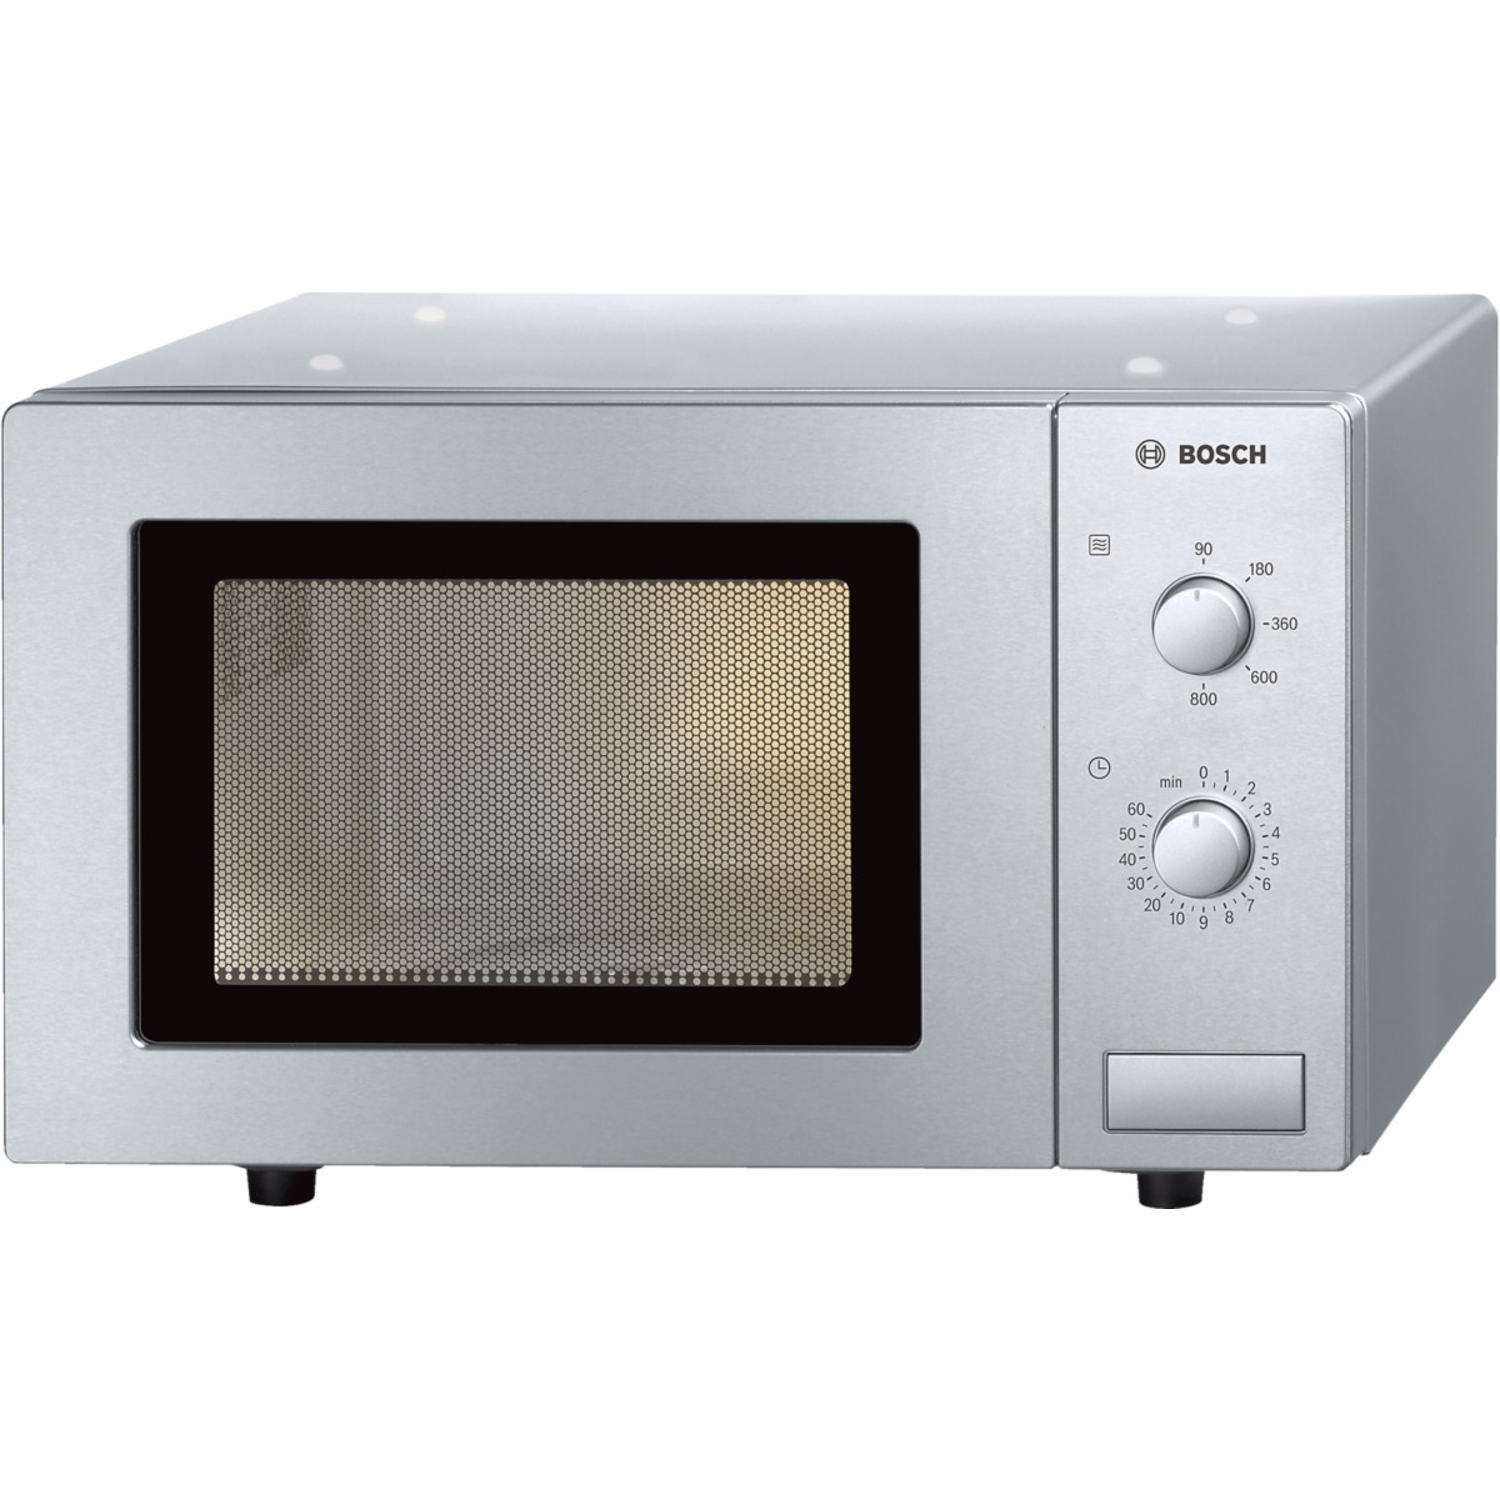 Bosch 17 Litre Microwave - Brushed Steel - 0